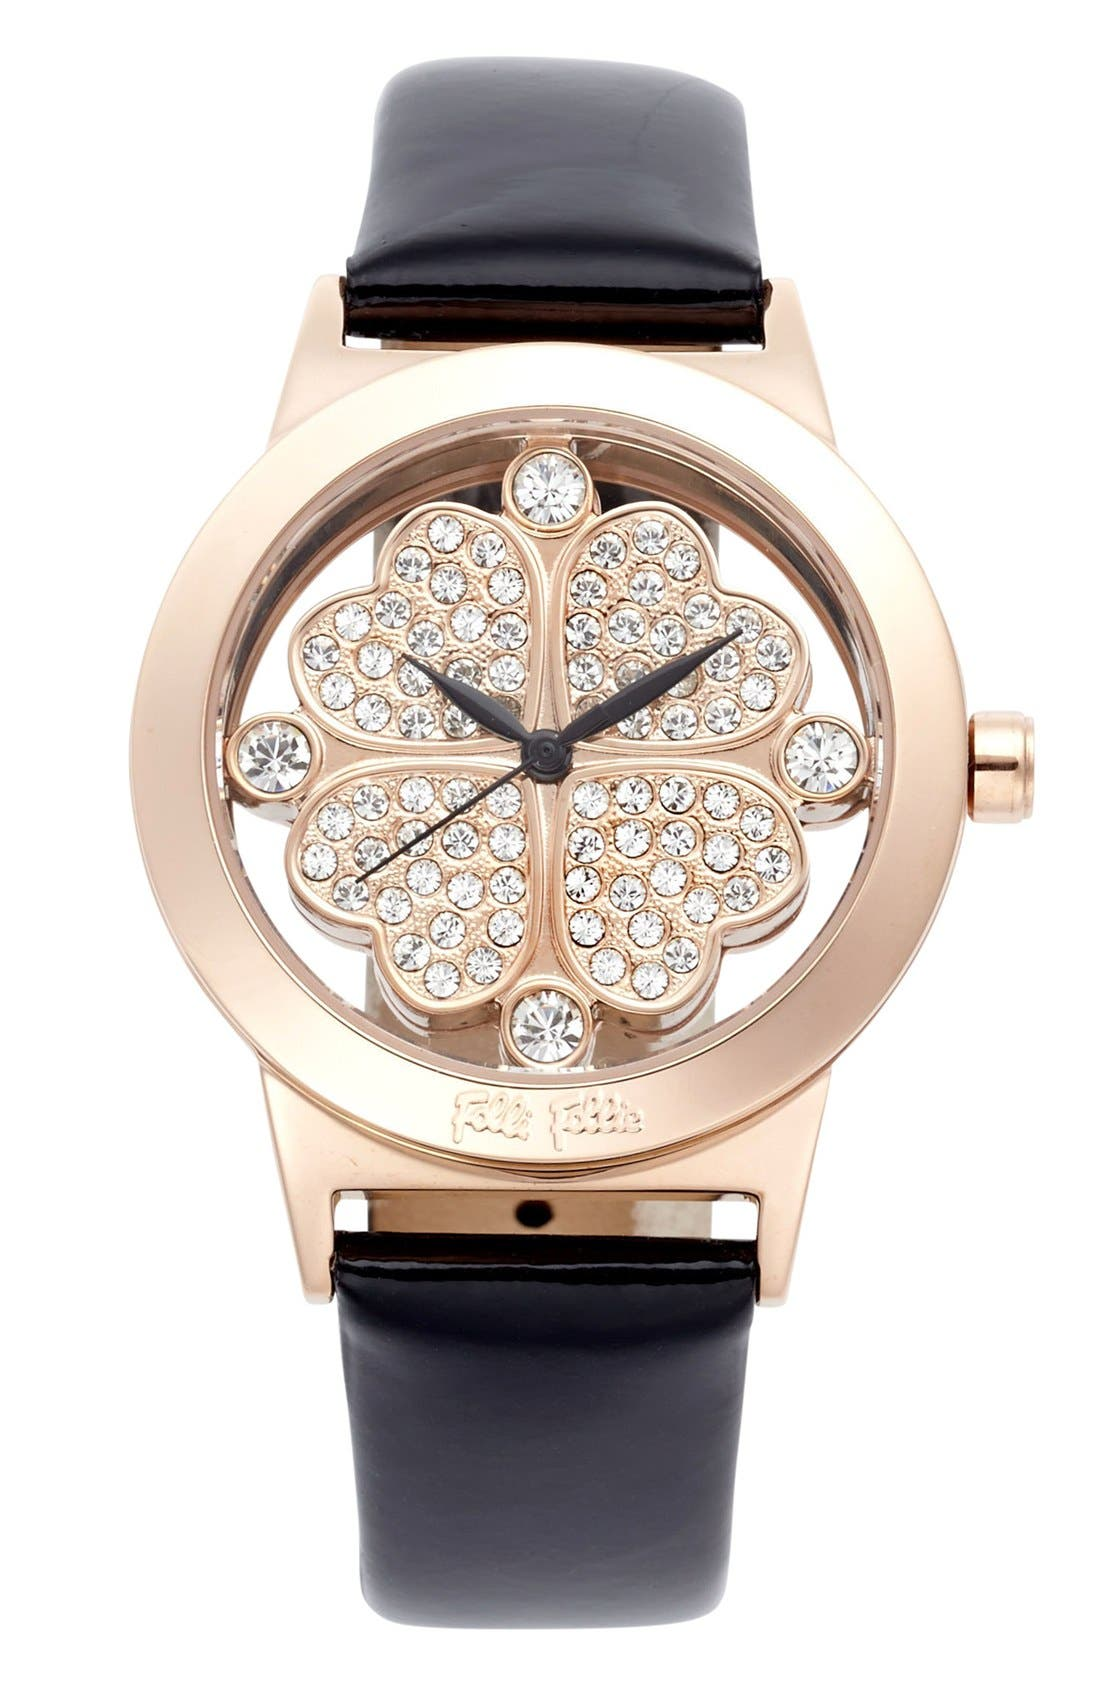 Main Image - Folli Follie 'Heart 4 Heart' Crystal Dial Leather Strap Watch, 36mm